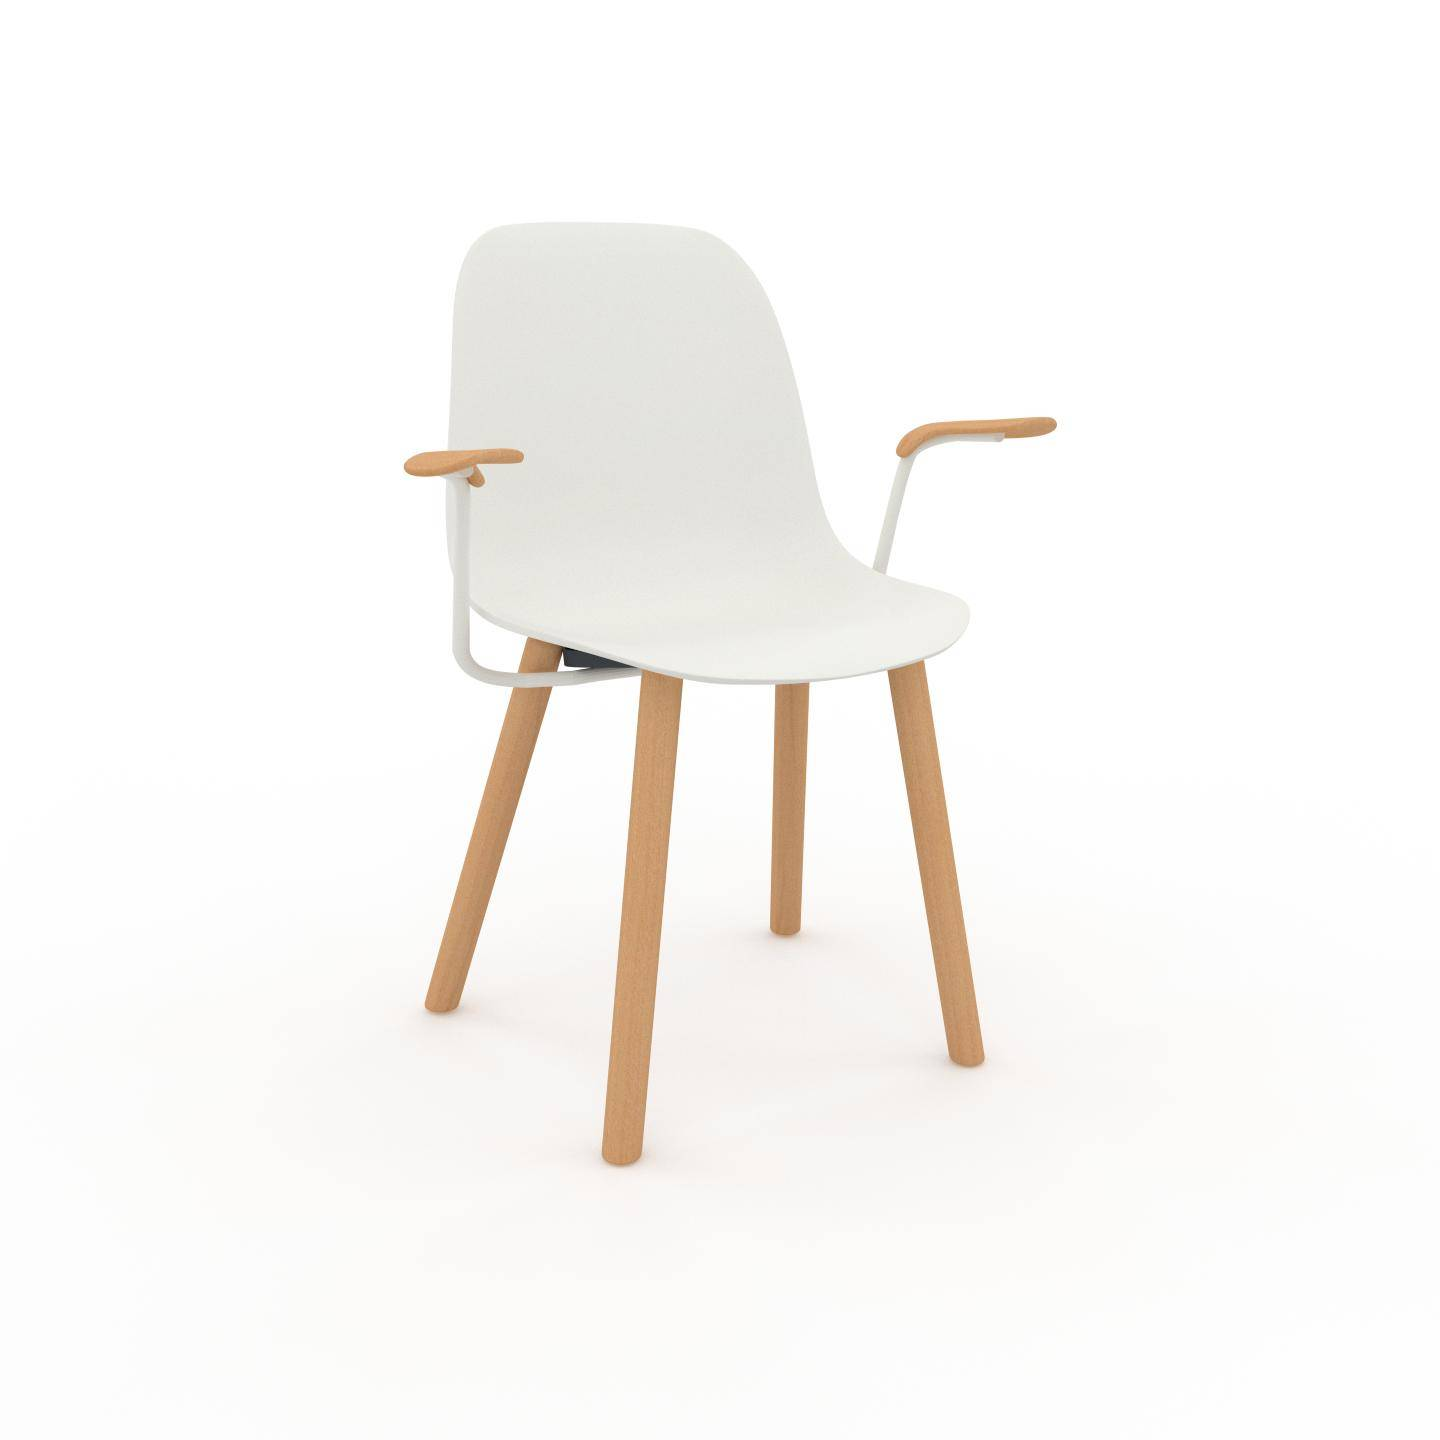 MYCS Chaise en bois blanc de 49 x 82 x 62 cm au design unique, configurable